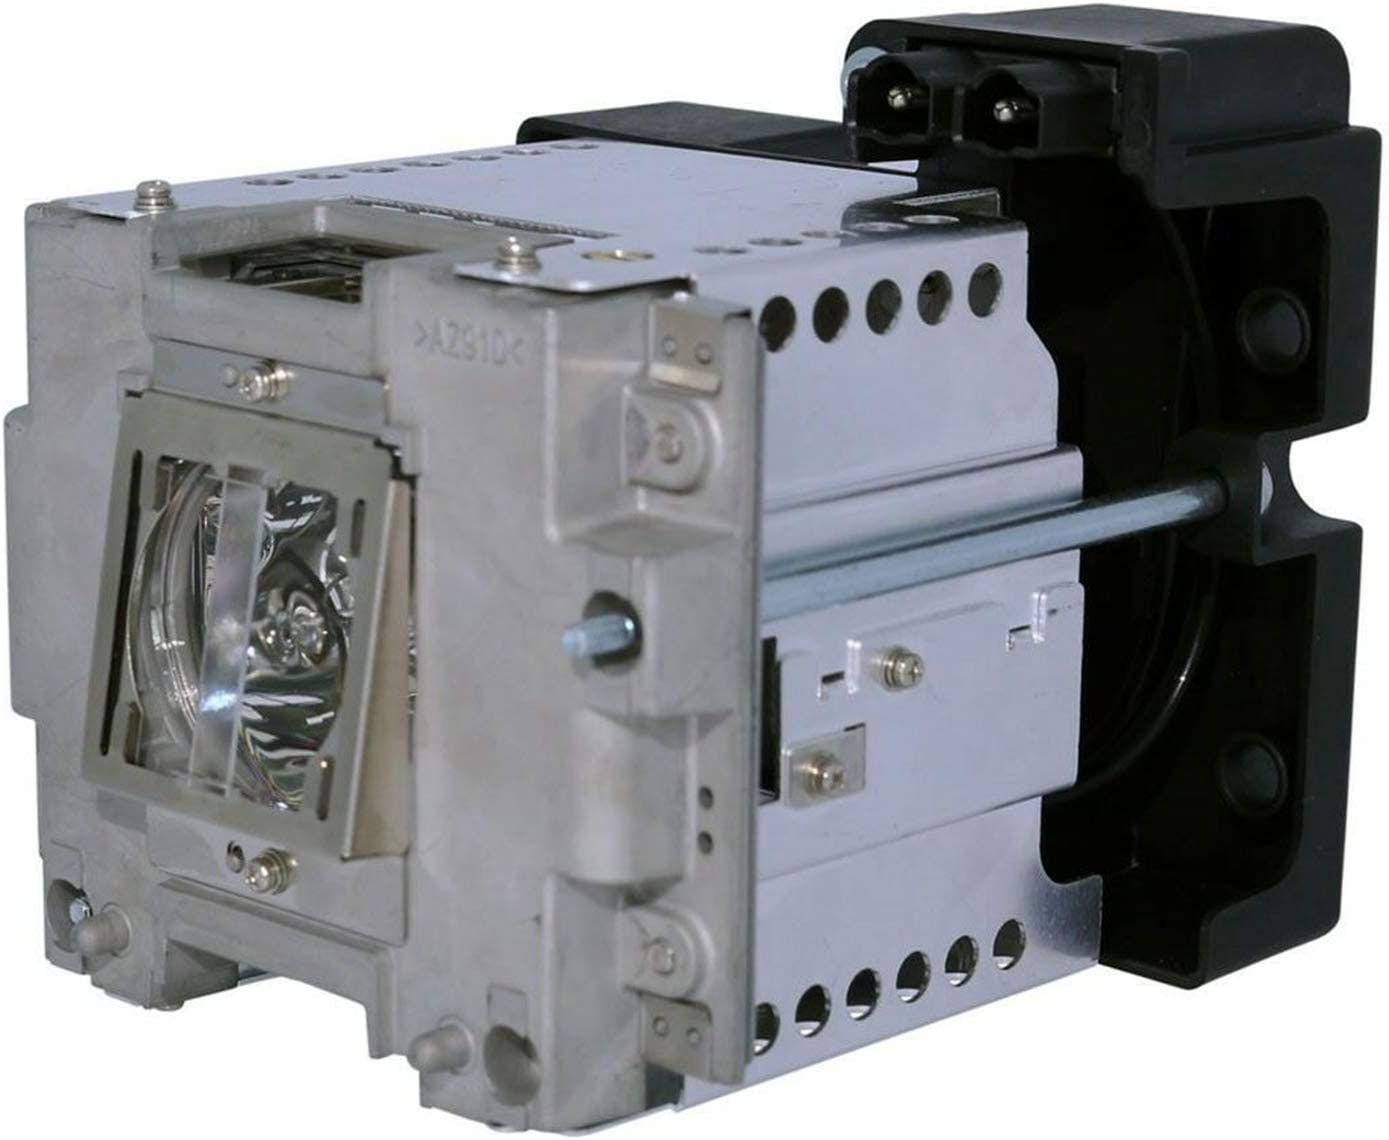 Rembam VLT-XD8600LP Projector Replacement Compatible Lamp with Housing for Mitsubishi UD8900U WD8700U